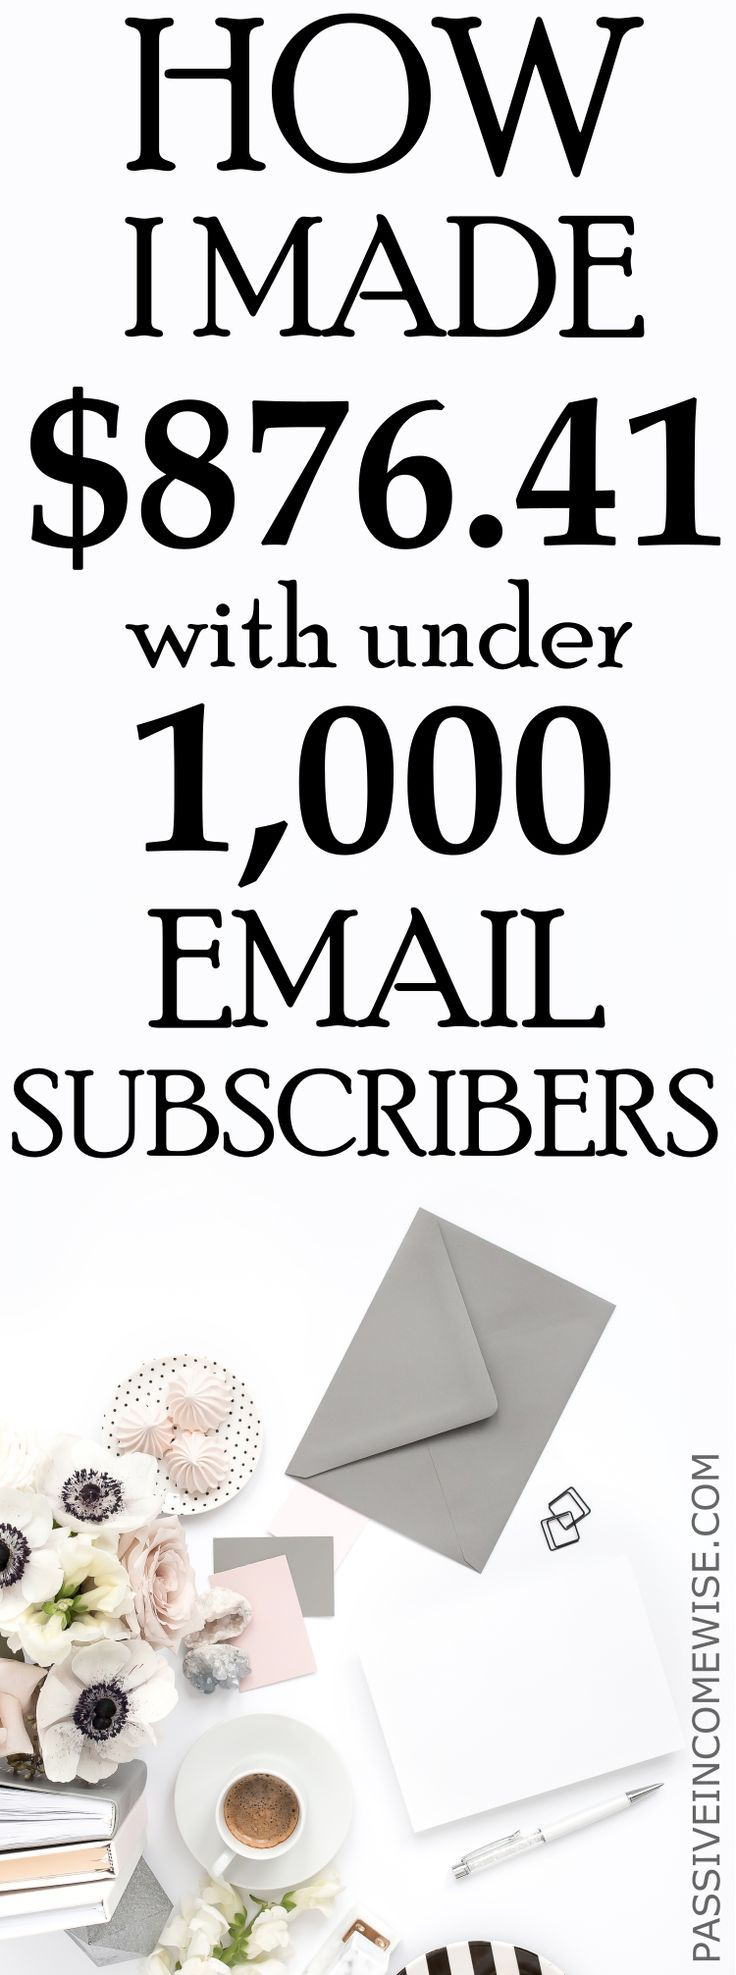 I just made $876.40 in the last 30 days from my email list! Plus, my email list grew in 271 new subscribers! Make money with email marketing, how to create an email list, get email subscribers, email marketing software, convertkit